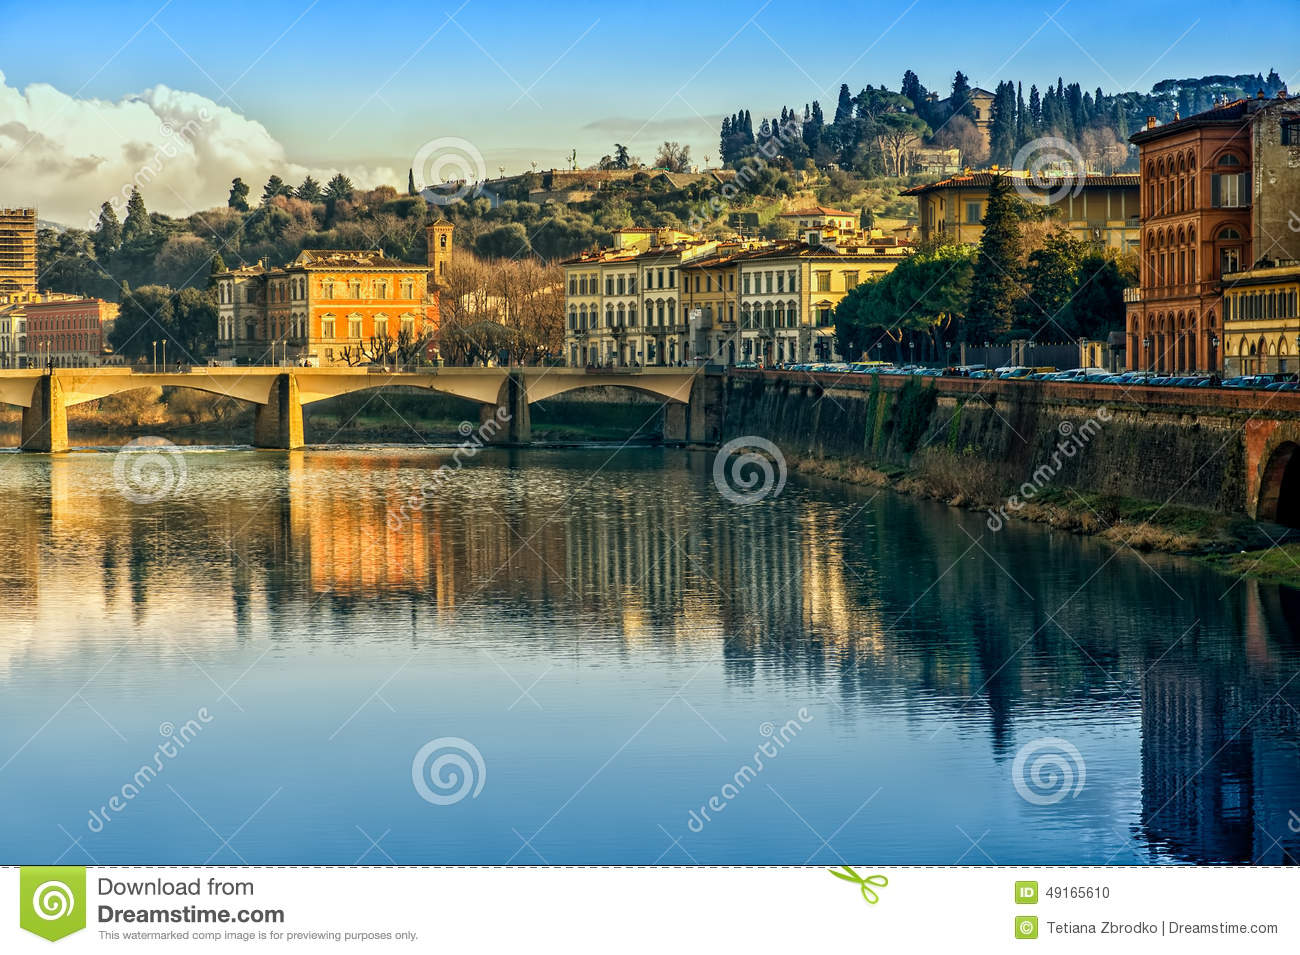 Florence tuscany italy stock photo image 49165610 for Is florence in tuscany